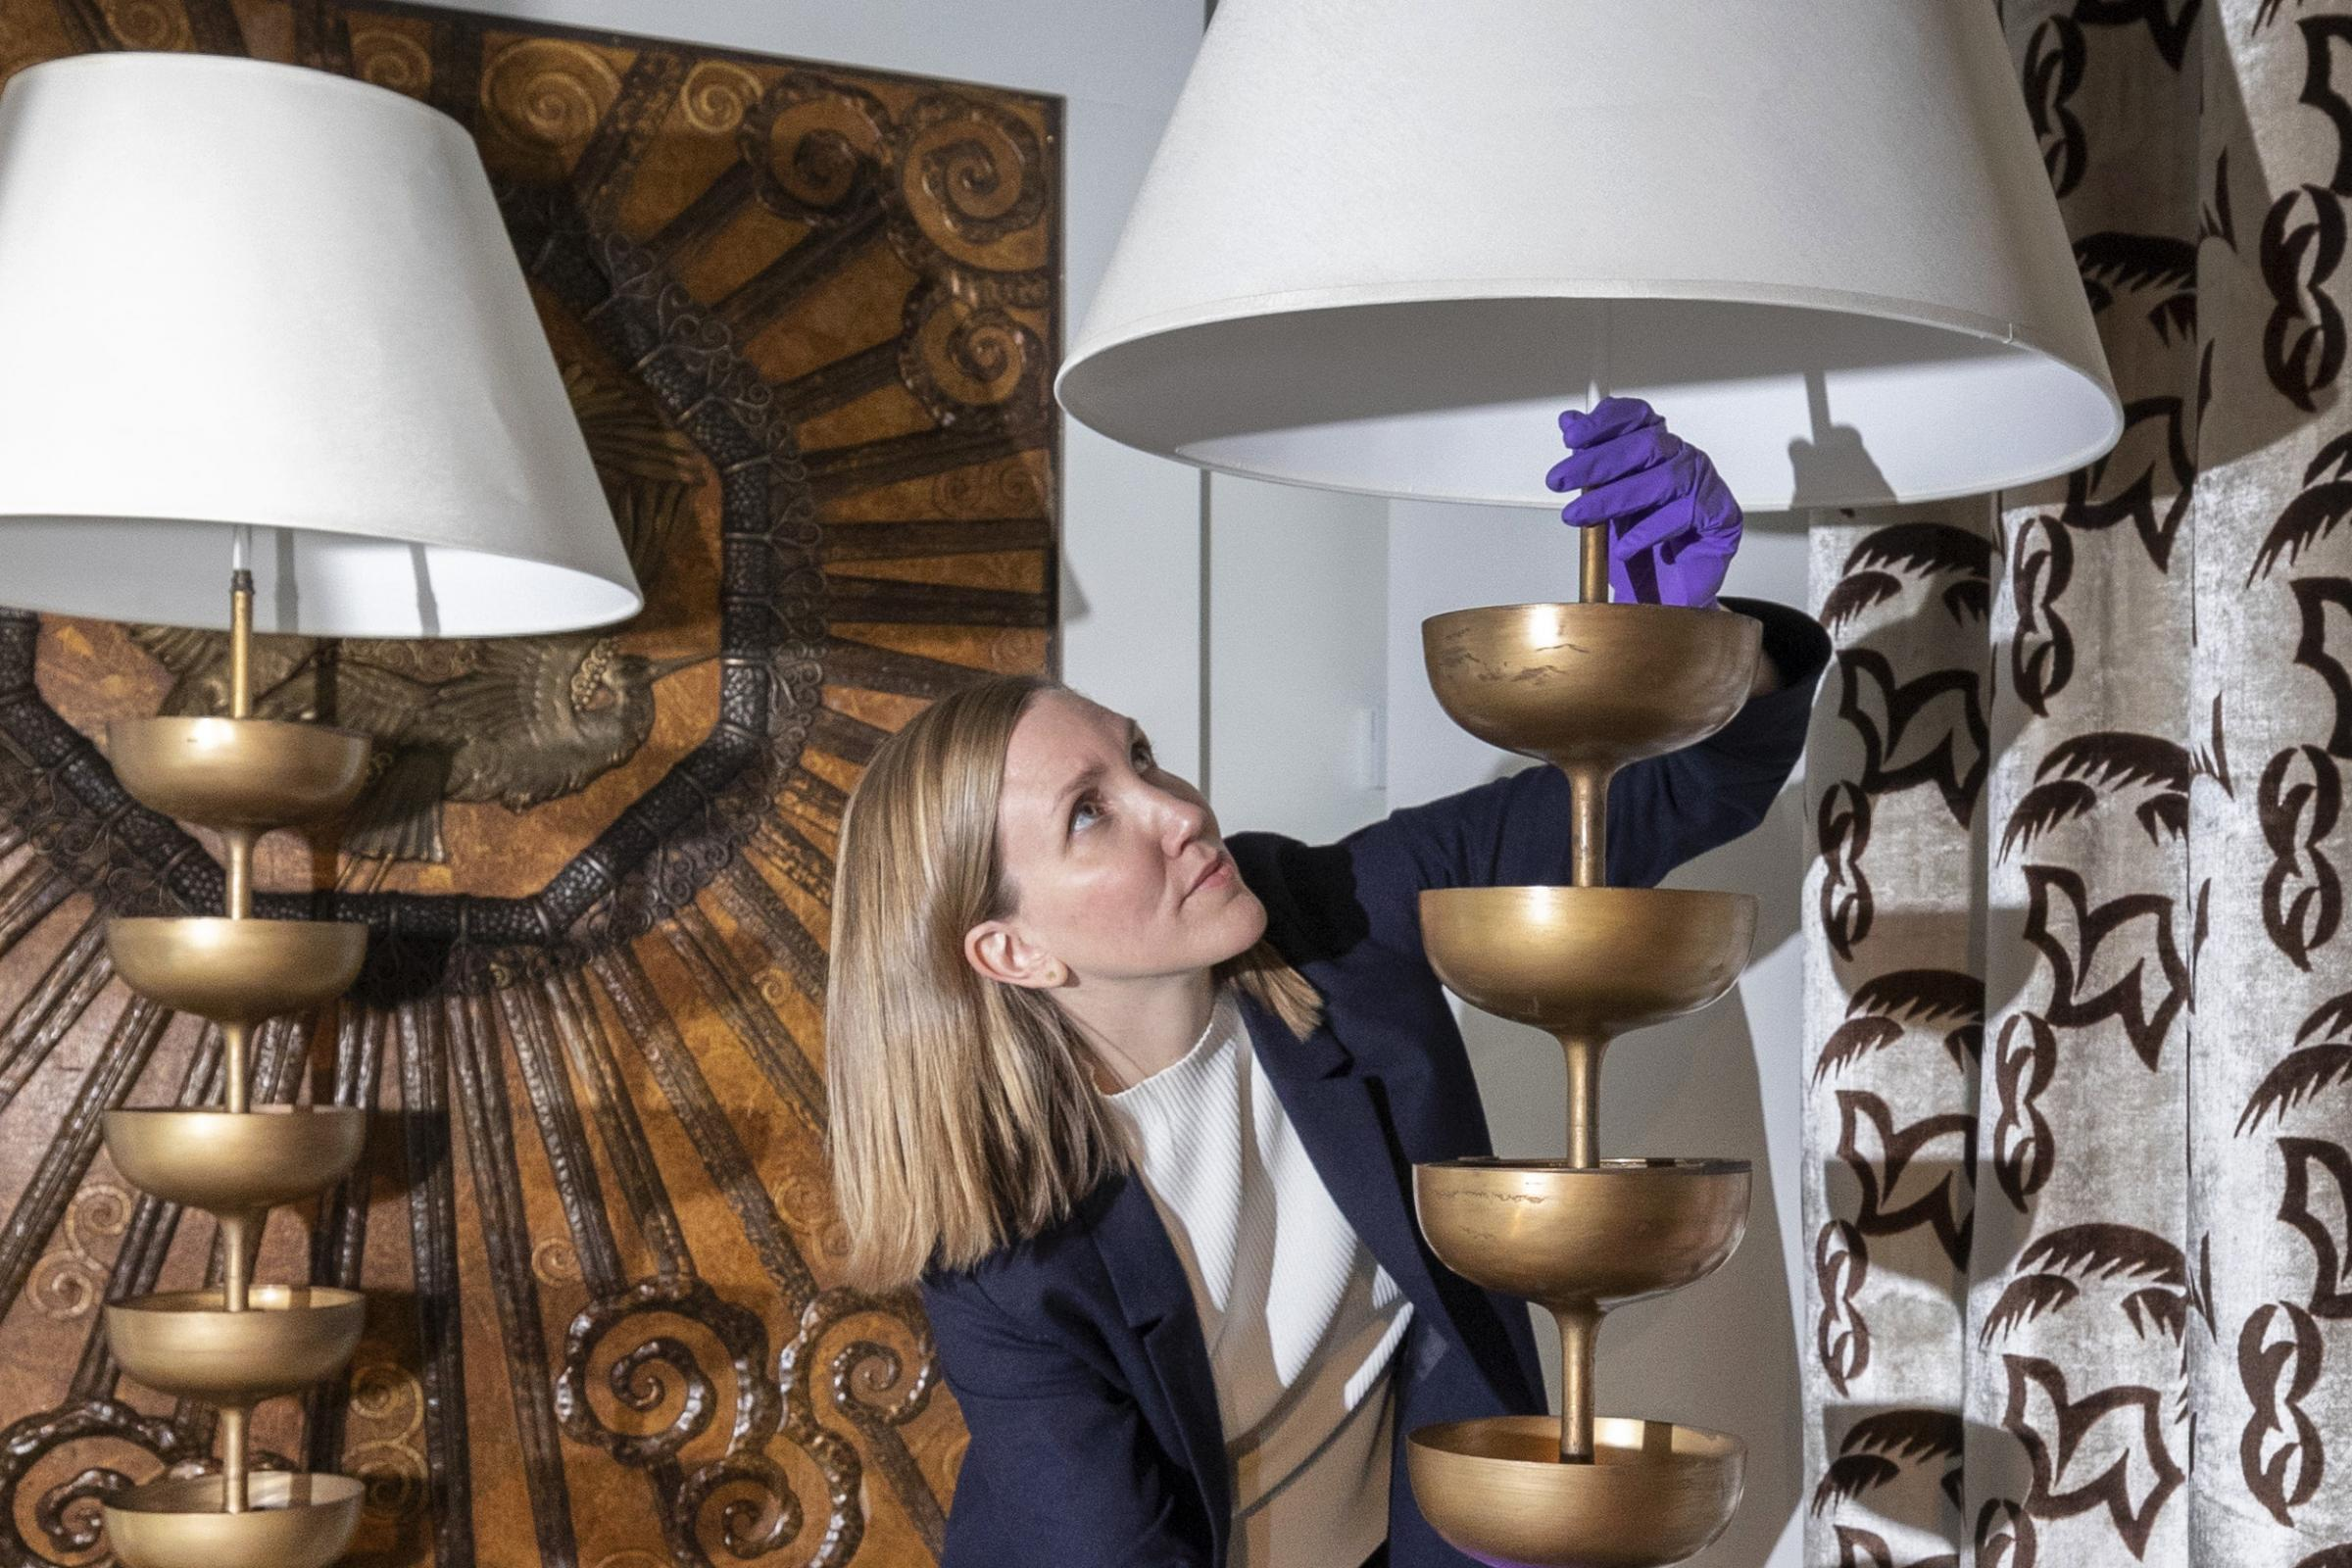 Salvador Dali's 'erotic' lamps get V&A home after being saved for nation